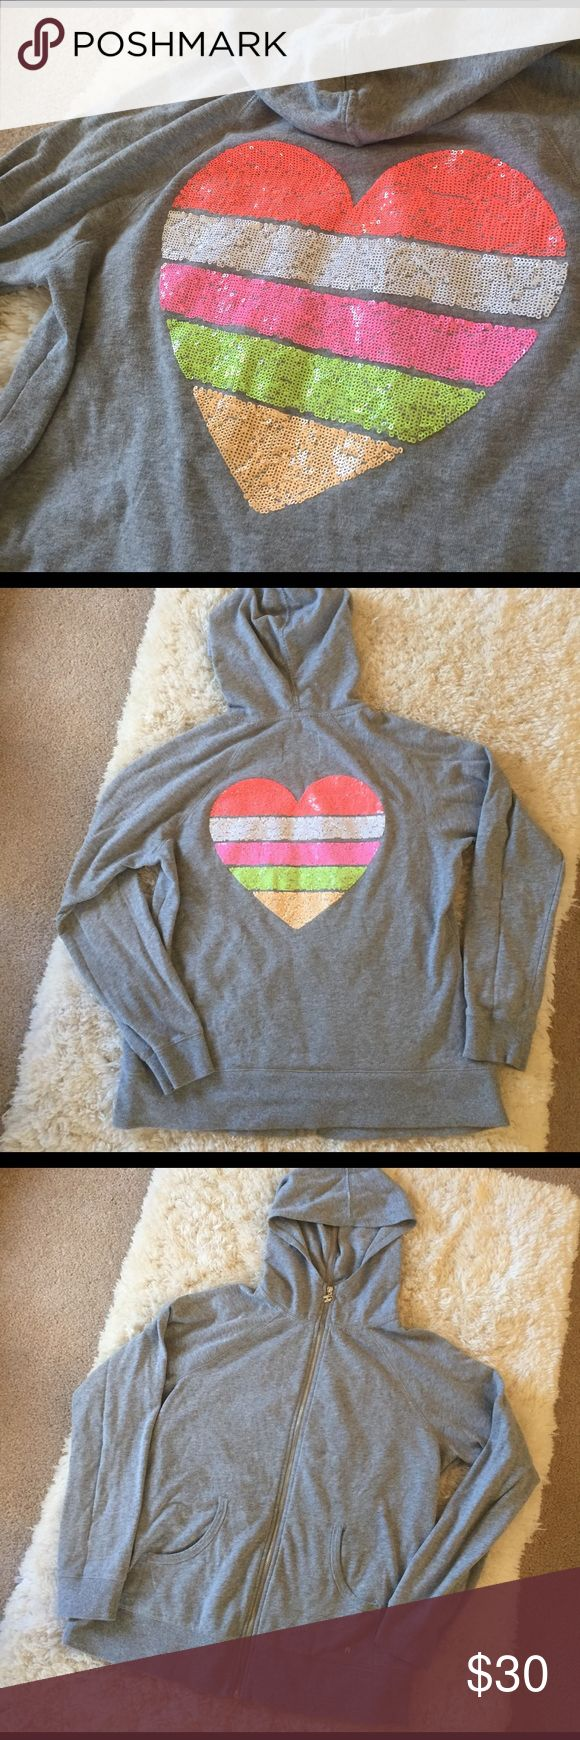 Victoria's Secret Zip Up Hoodie Sequin Heart Fabulous Victoria's Secret zip up hoodie! Very gently used condition. Size XL. Pockets on front. Small silver angel wings logo on pocket and on zipper pull. Back has a huge sequin heart in coral, white, pink, green and orange. So cute and comfortable! Victoria's Secret Tops Sweatshirts & Hoodies